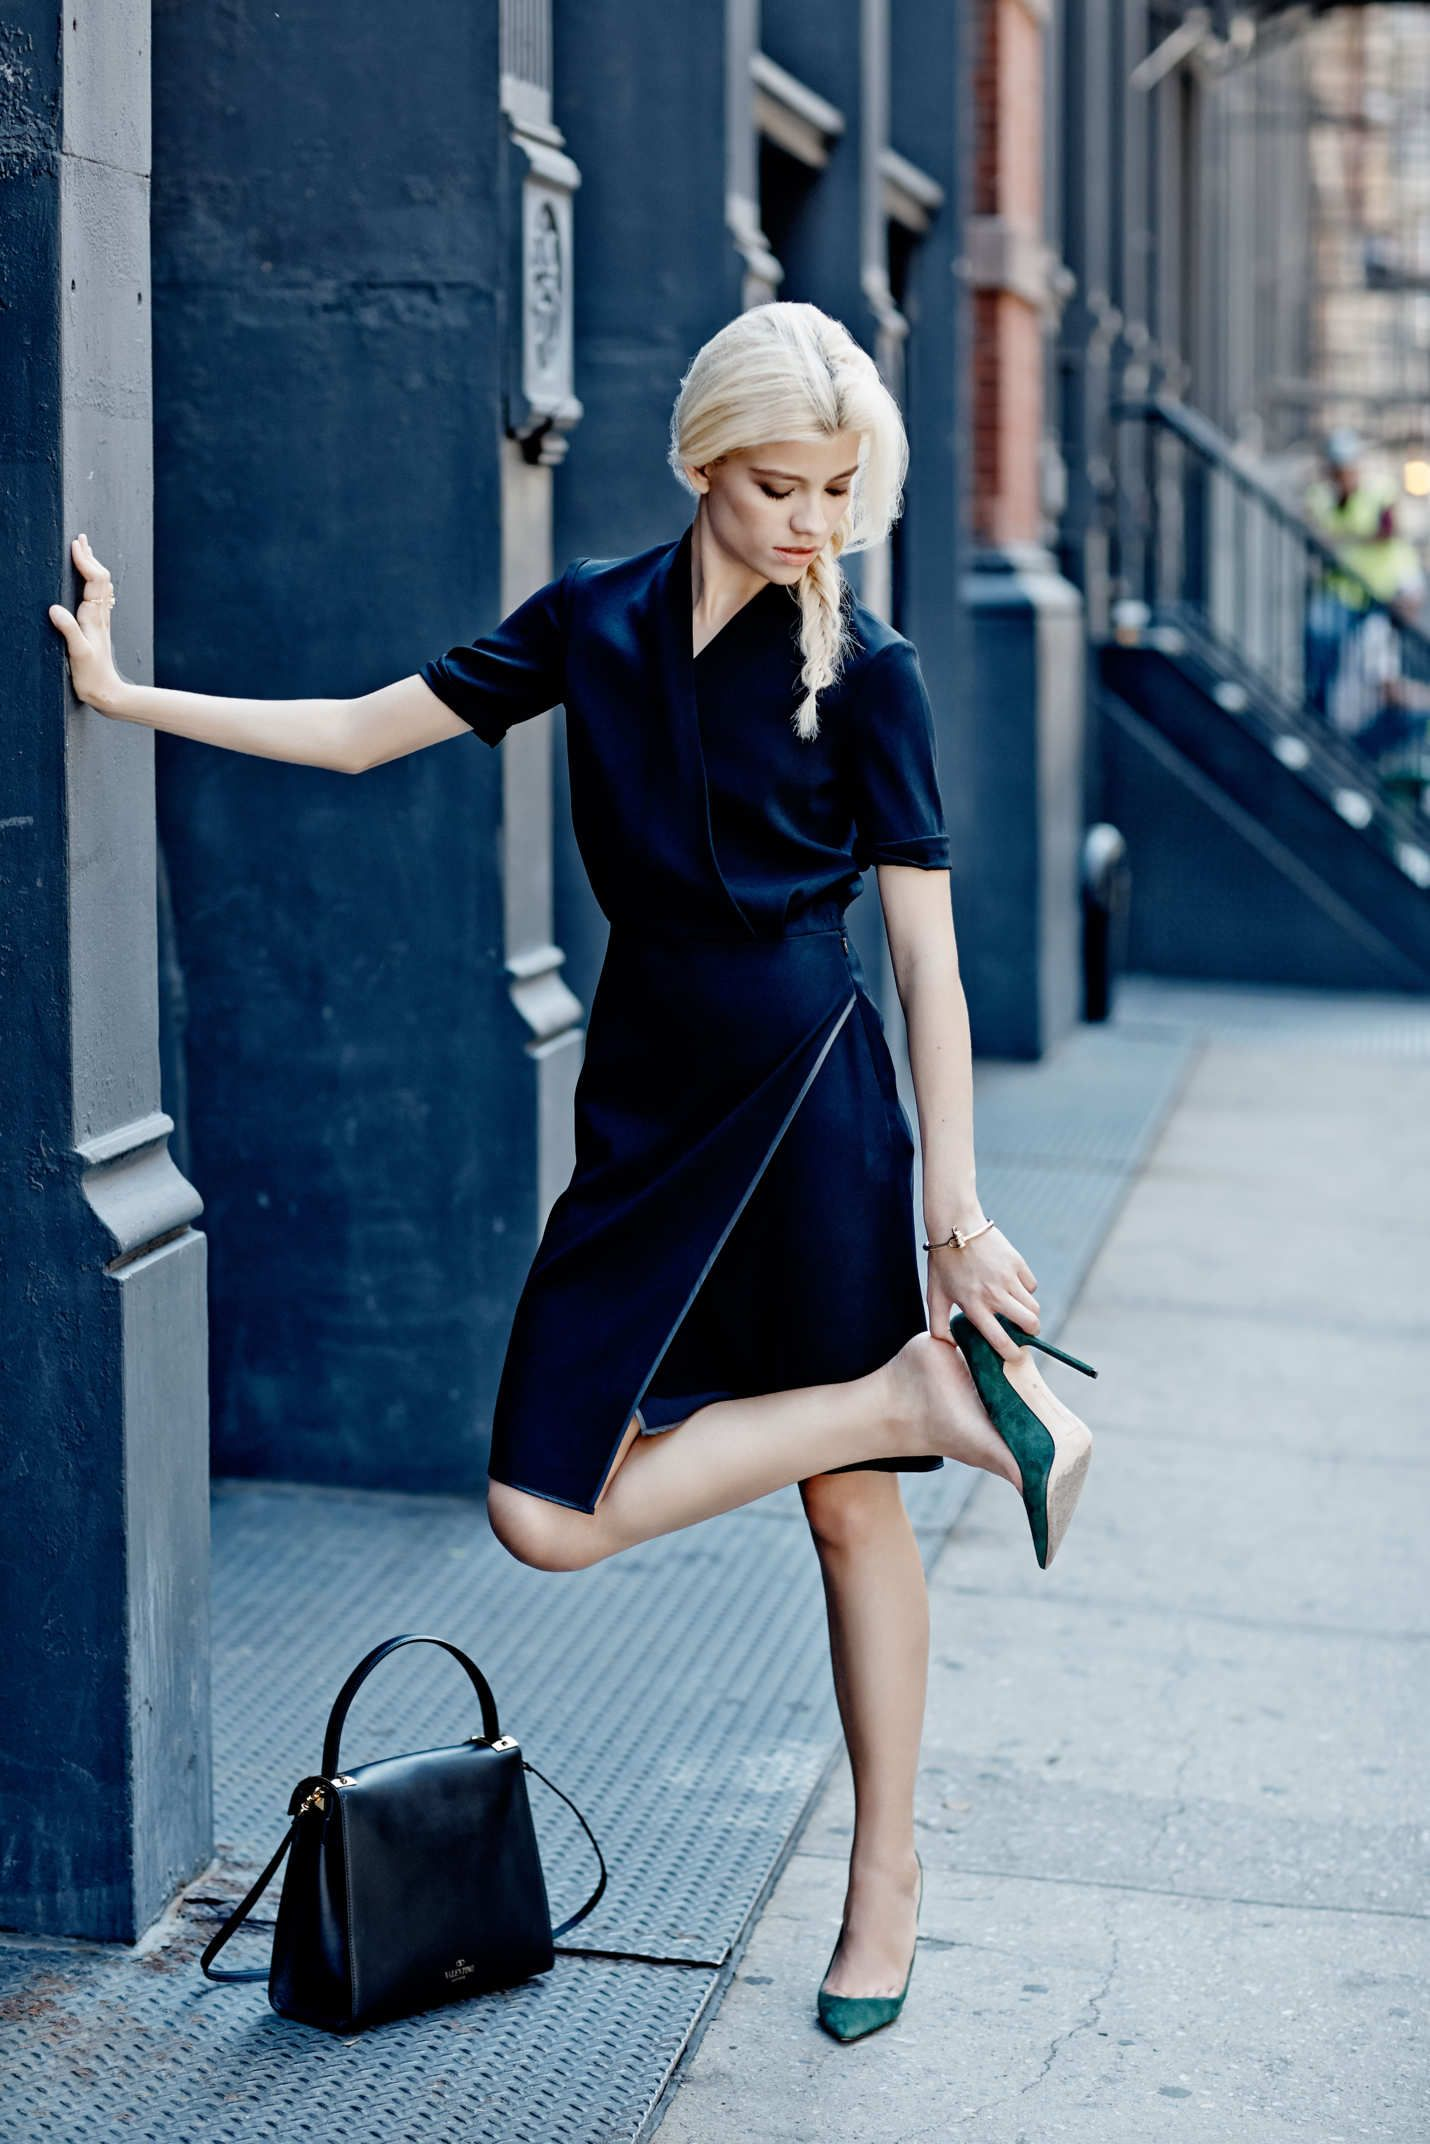 Outfit Of The Week A Work Friendly Black Dress And Great Heels Weekly Outfits Pumps Outfit Fashion [ 2144 x 1430 Pixel ]